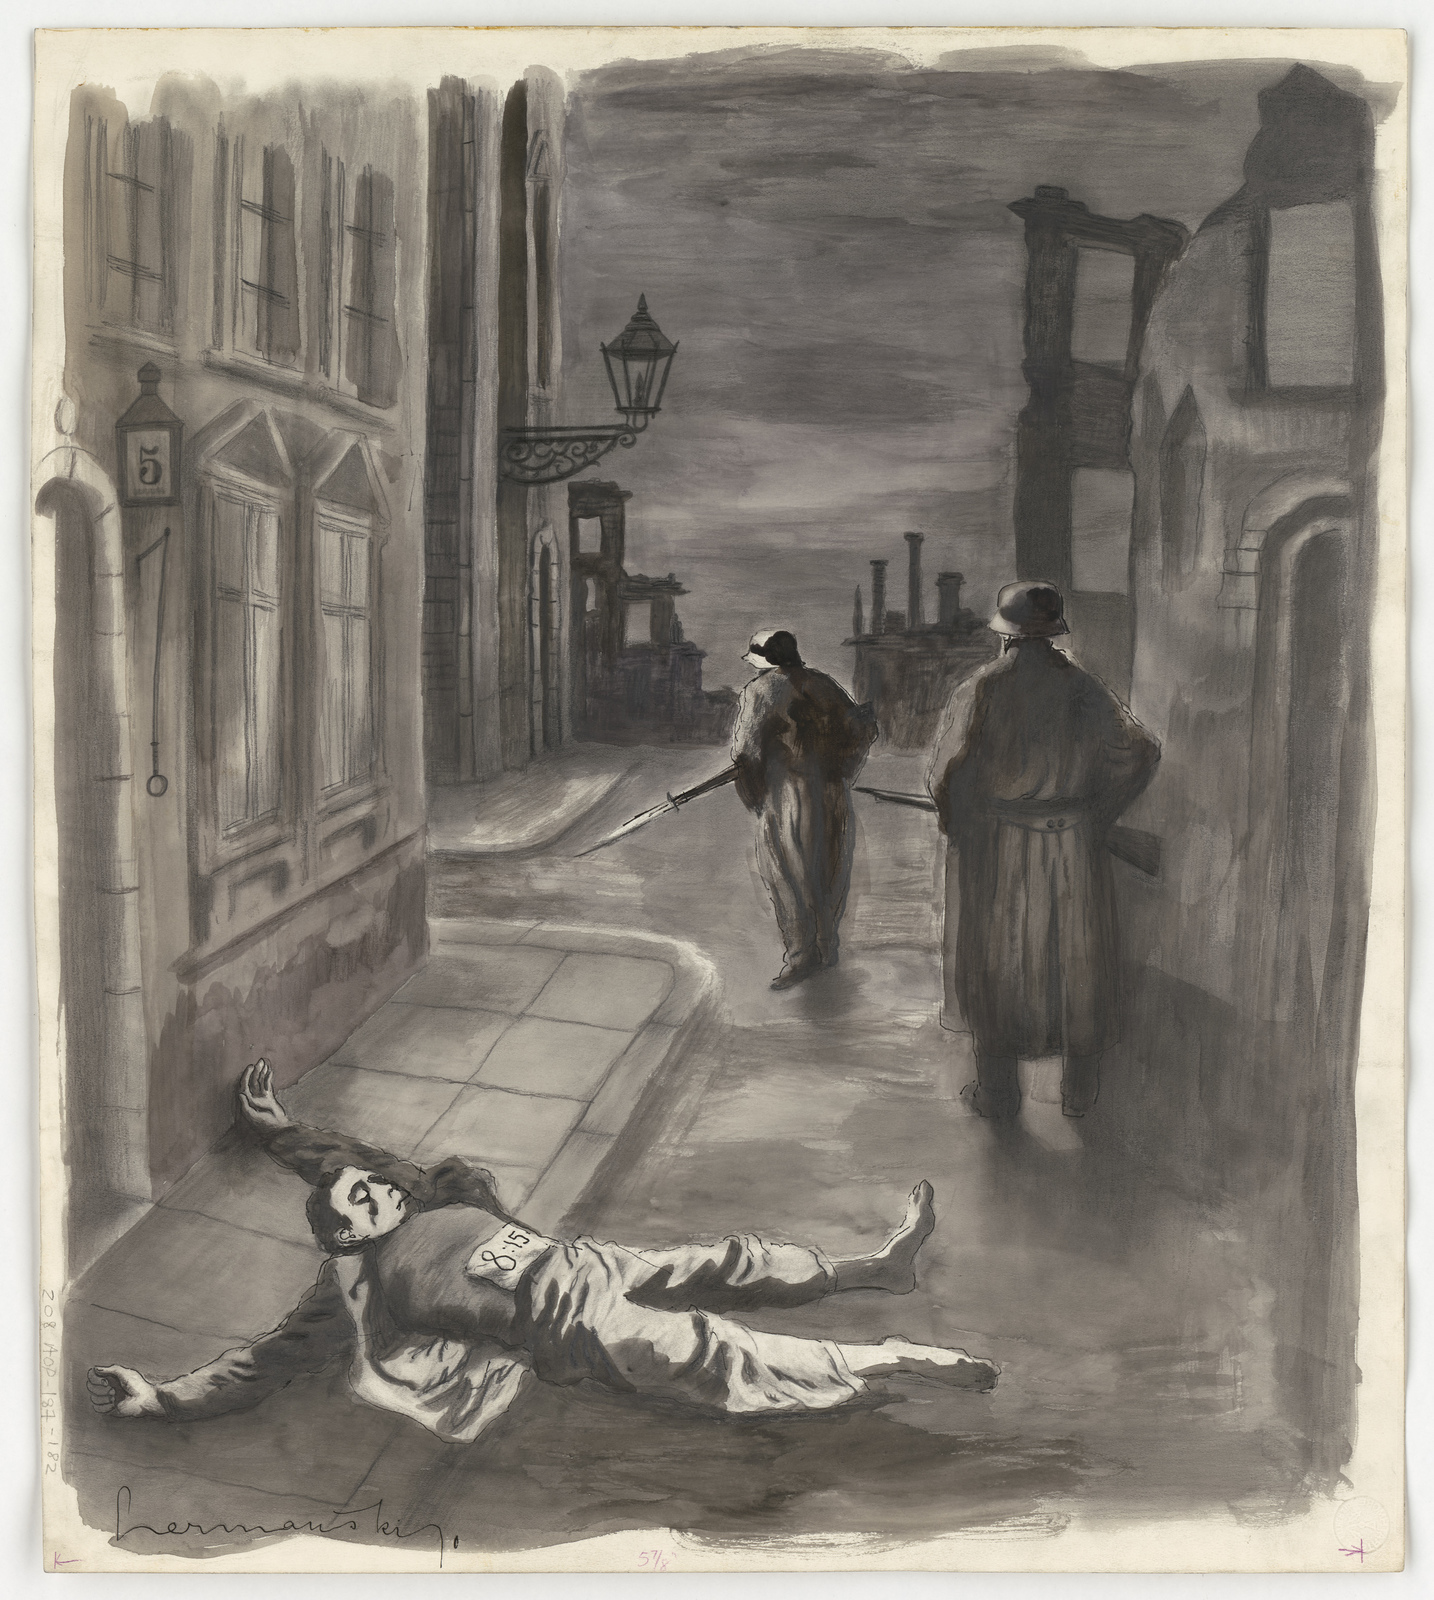 [Two German soldiers walking the streets of a city with a dead man in the foreground]